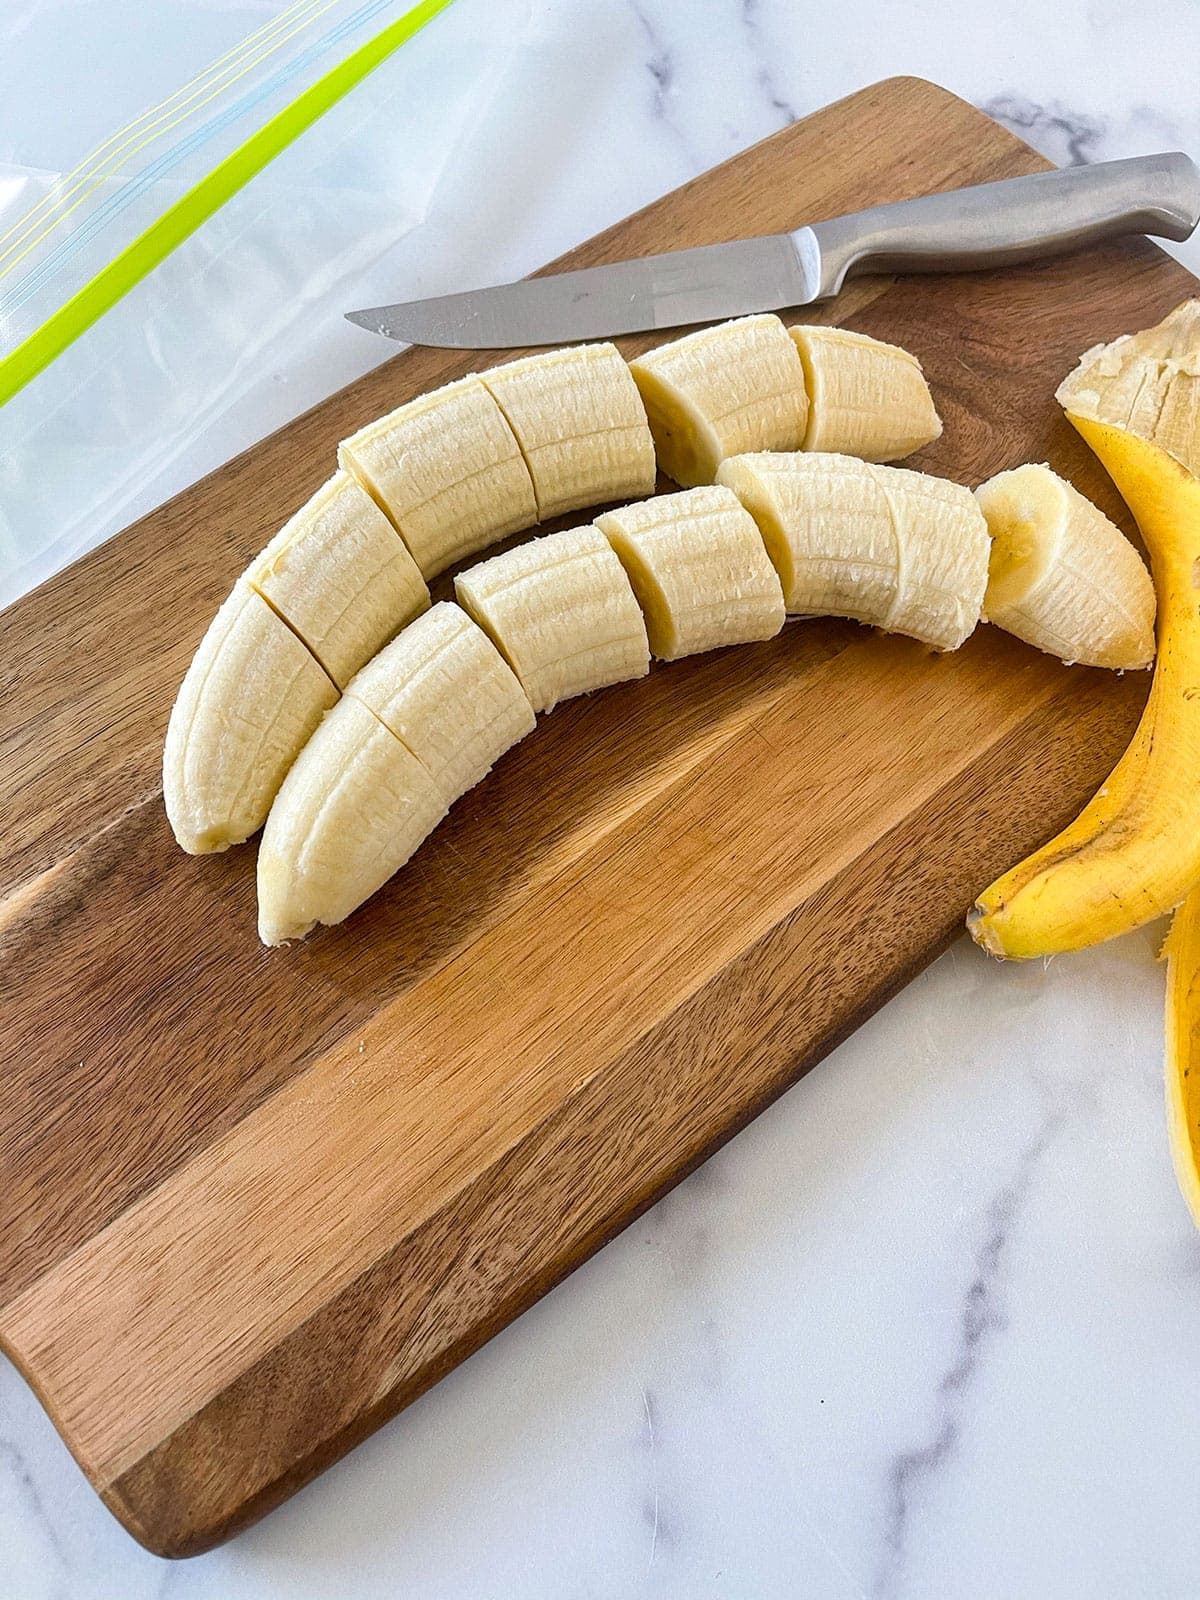 Peel bananas cut into slices on a wooden cutting board